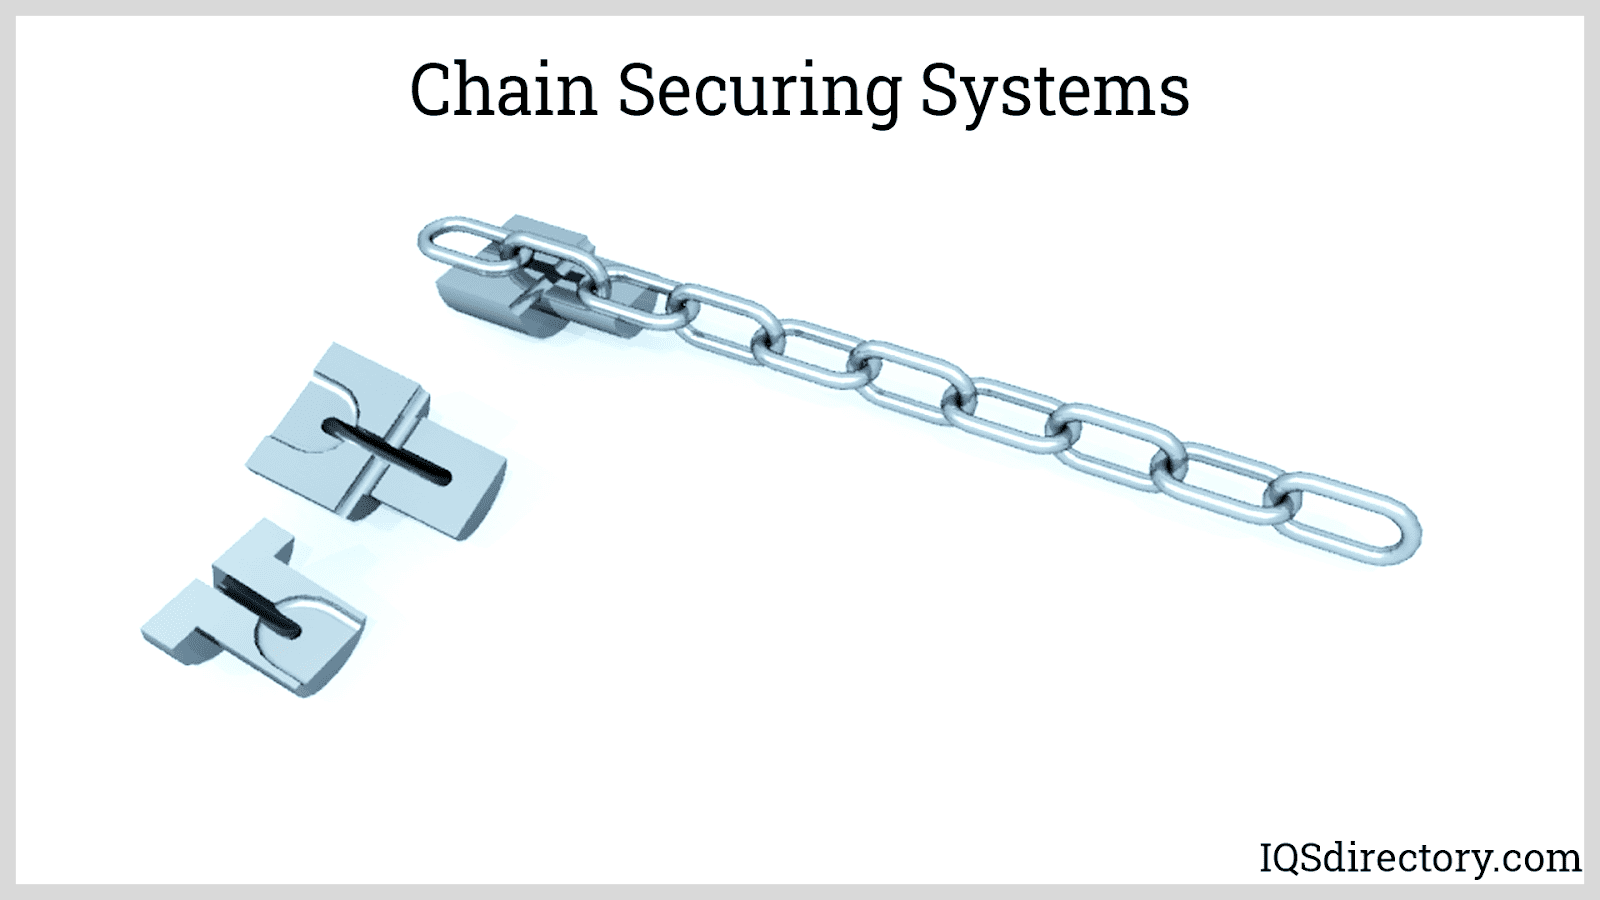 Chain Securing Systems